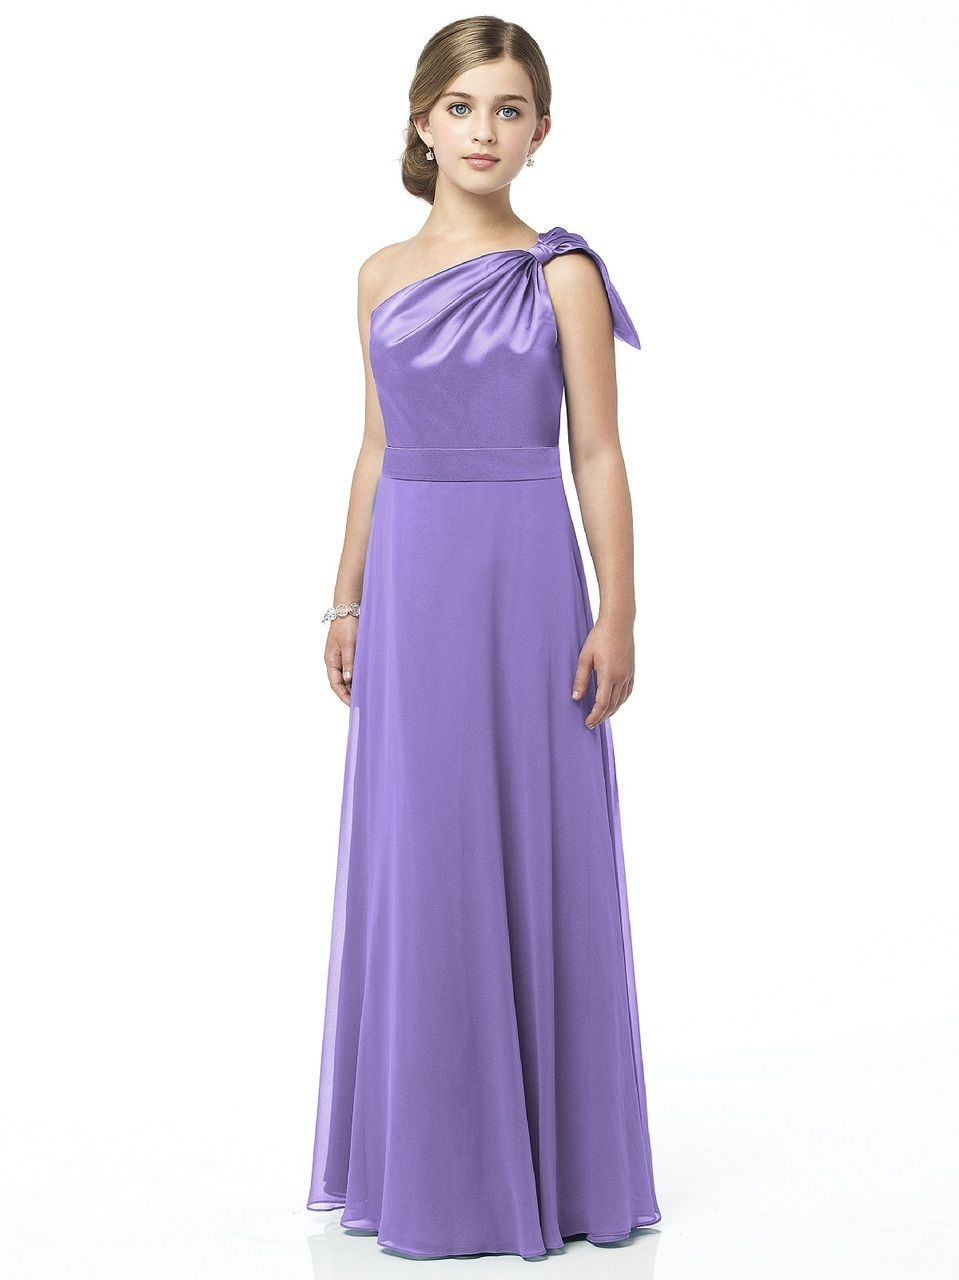 Dessy collection junior bridesmaid jr514 bridal stores best place of charleston wedding bridal store charleston sc shop for bridesmaid dresses ombrellifo Images